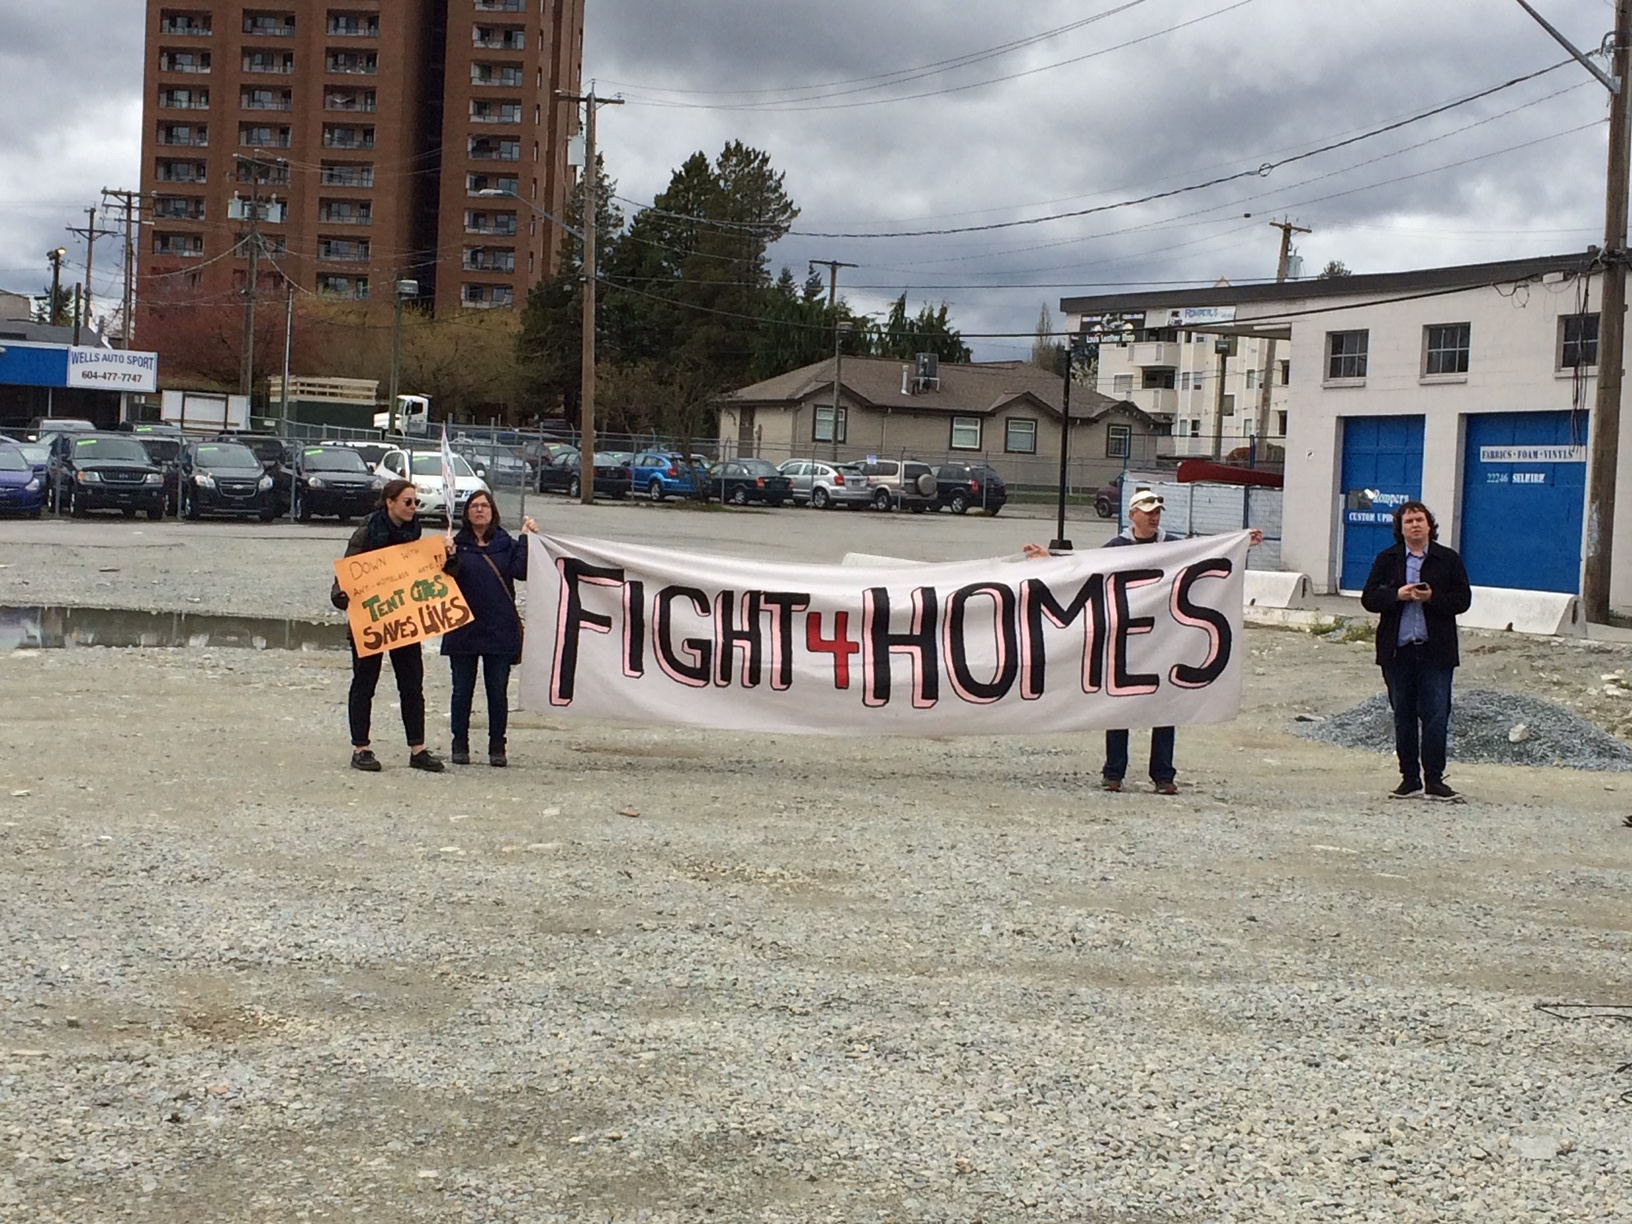 Homes Not hate rally in Maple Ridge - April 14 2019 (5).JPG